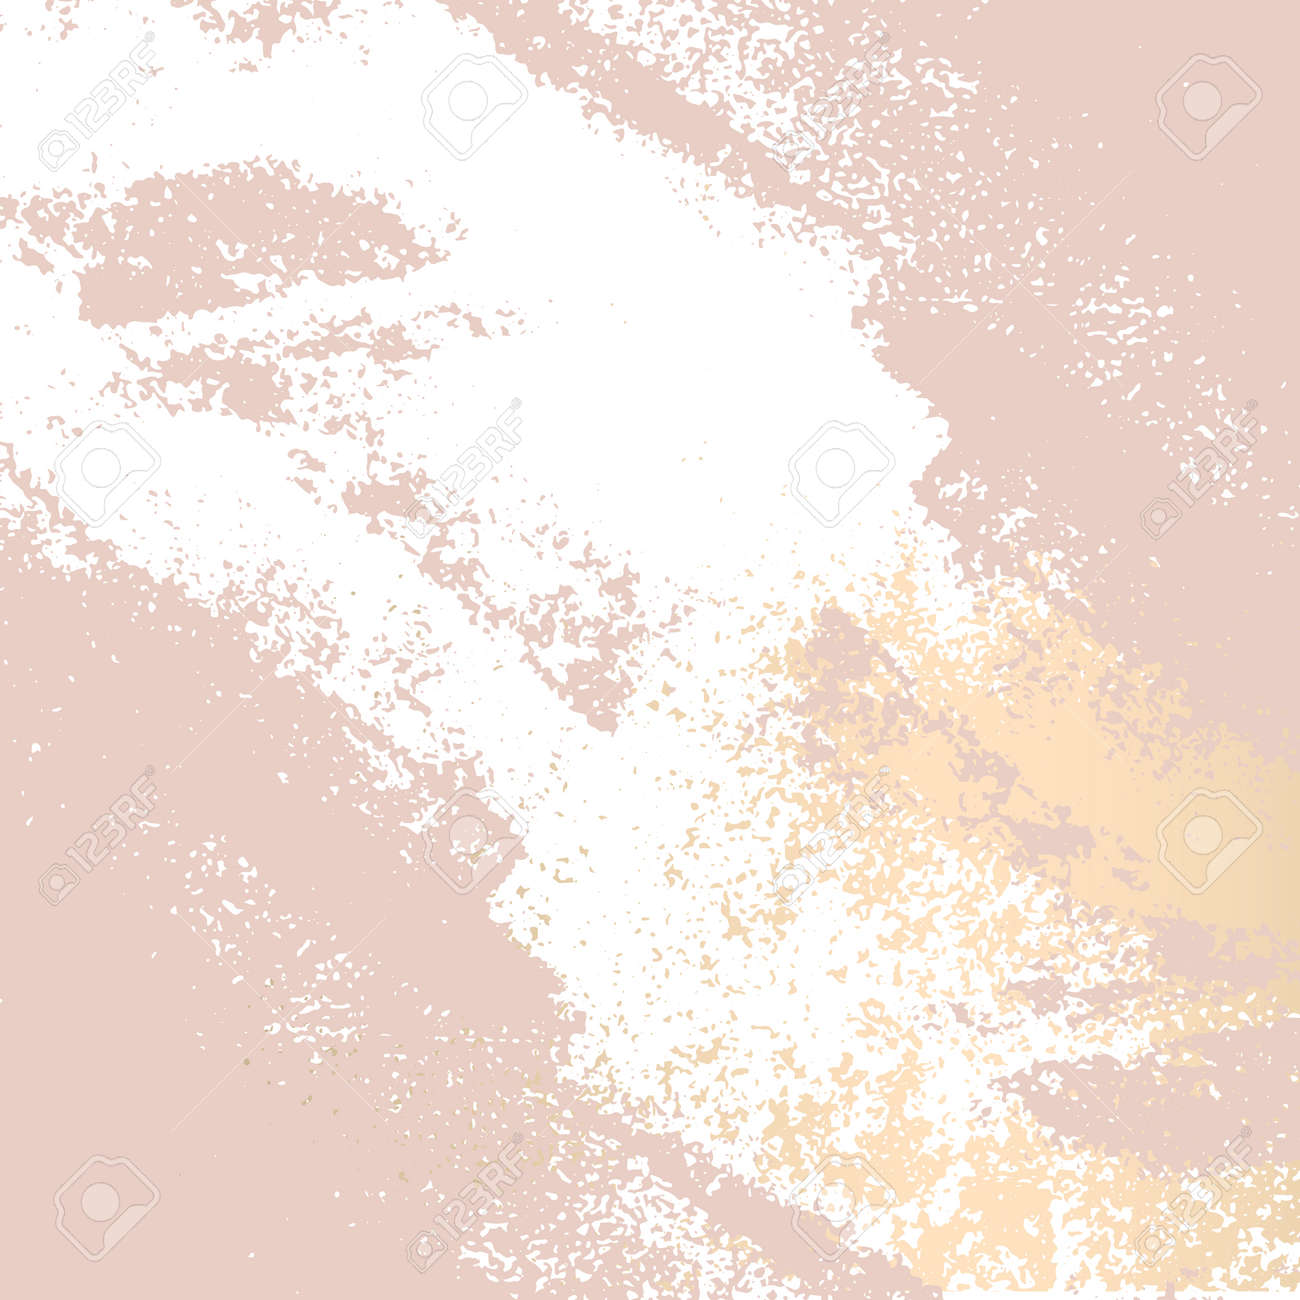 Trendy Blush Pink Gold Feminine Pastel Texture Background For Royalty Free Cliparts Vectors And Stock Illustration Image 135030267